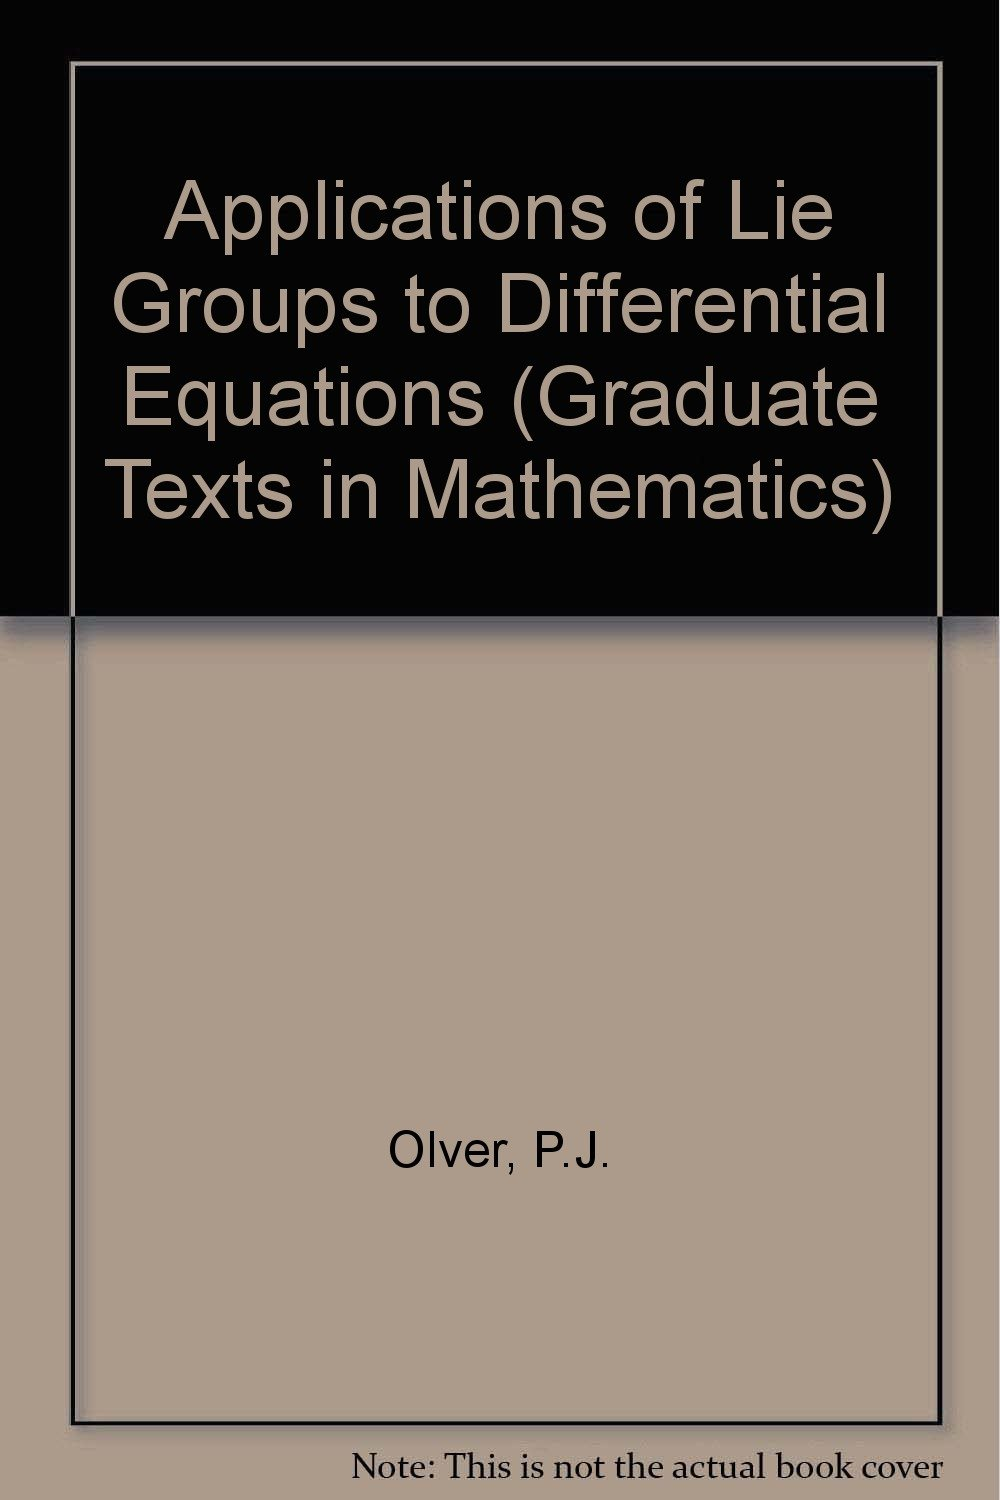 Applications of Lie Groups to Differential Equations (Graduate Texts in Mathematics)